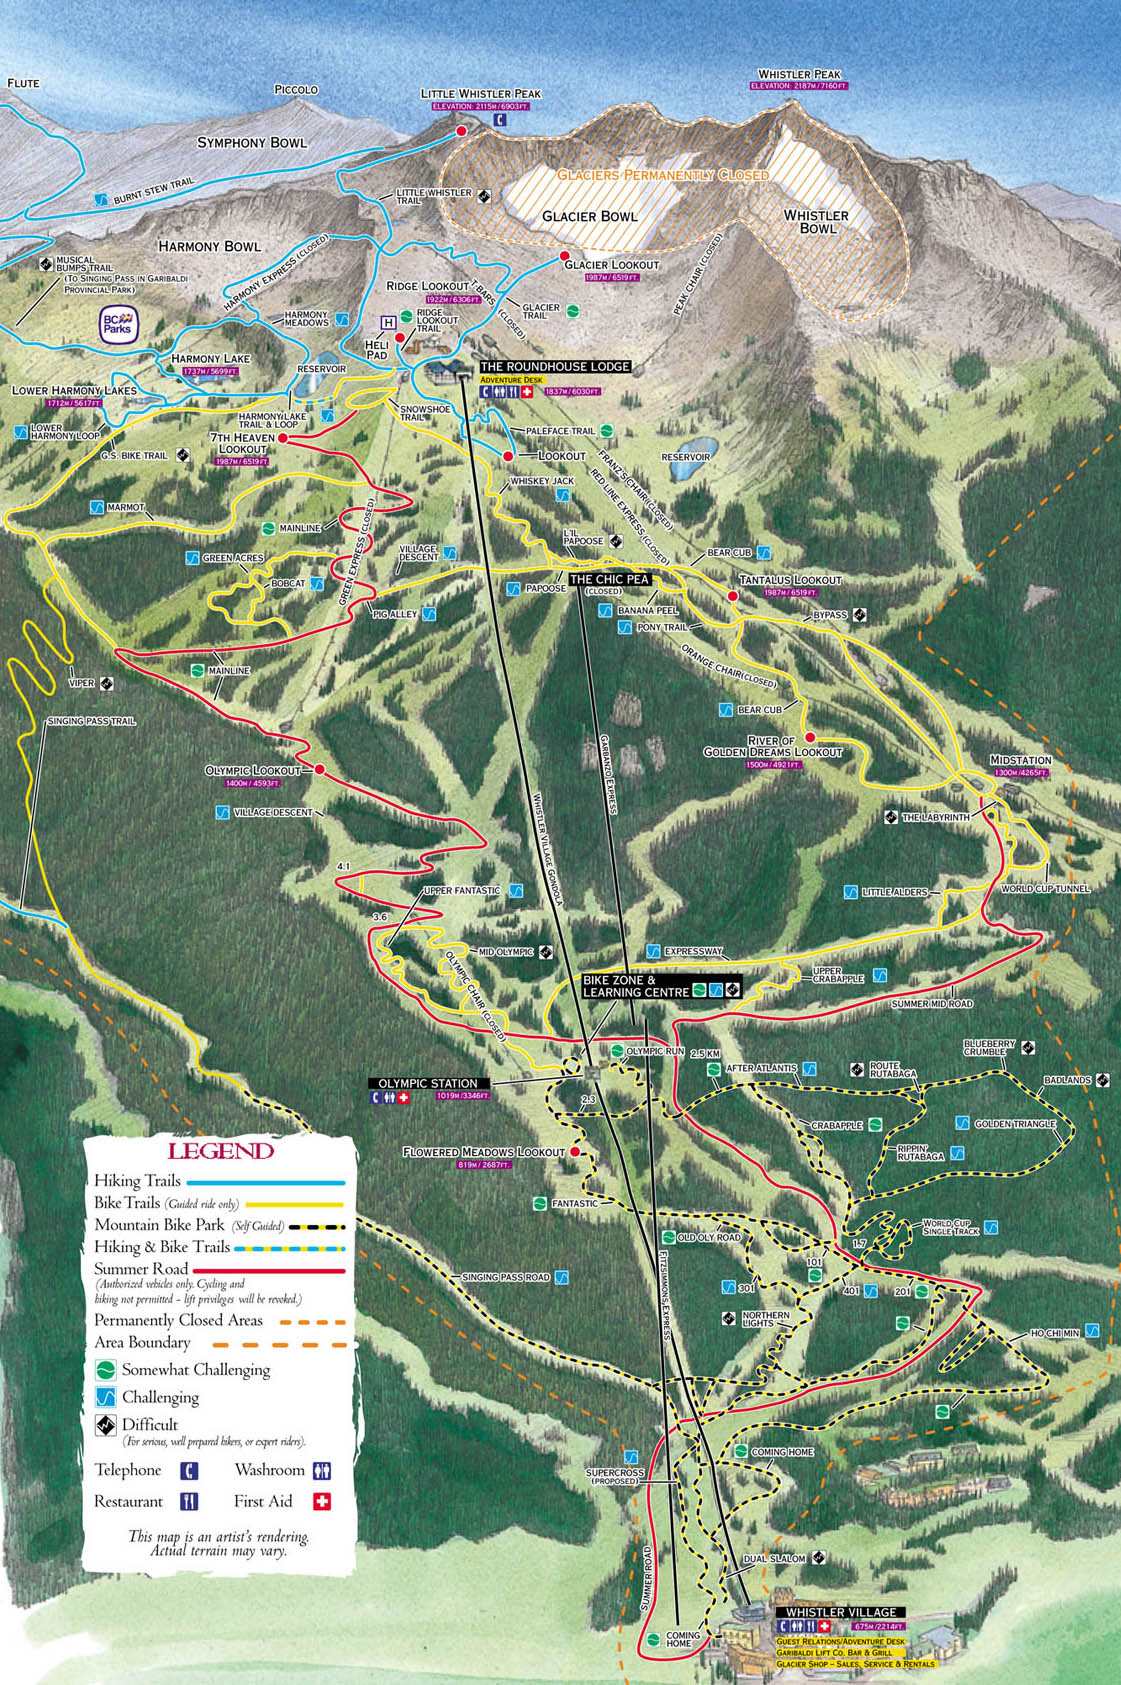 Whistler blackcomb summer trail map whistler mountain atlas click on image to view larger version gumiabroncs Gallery